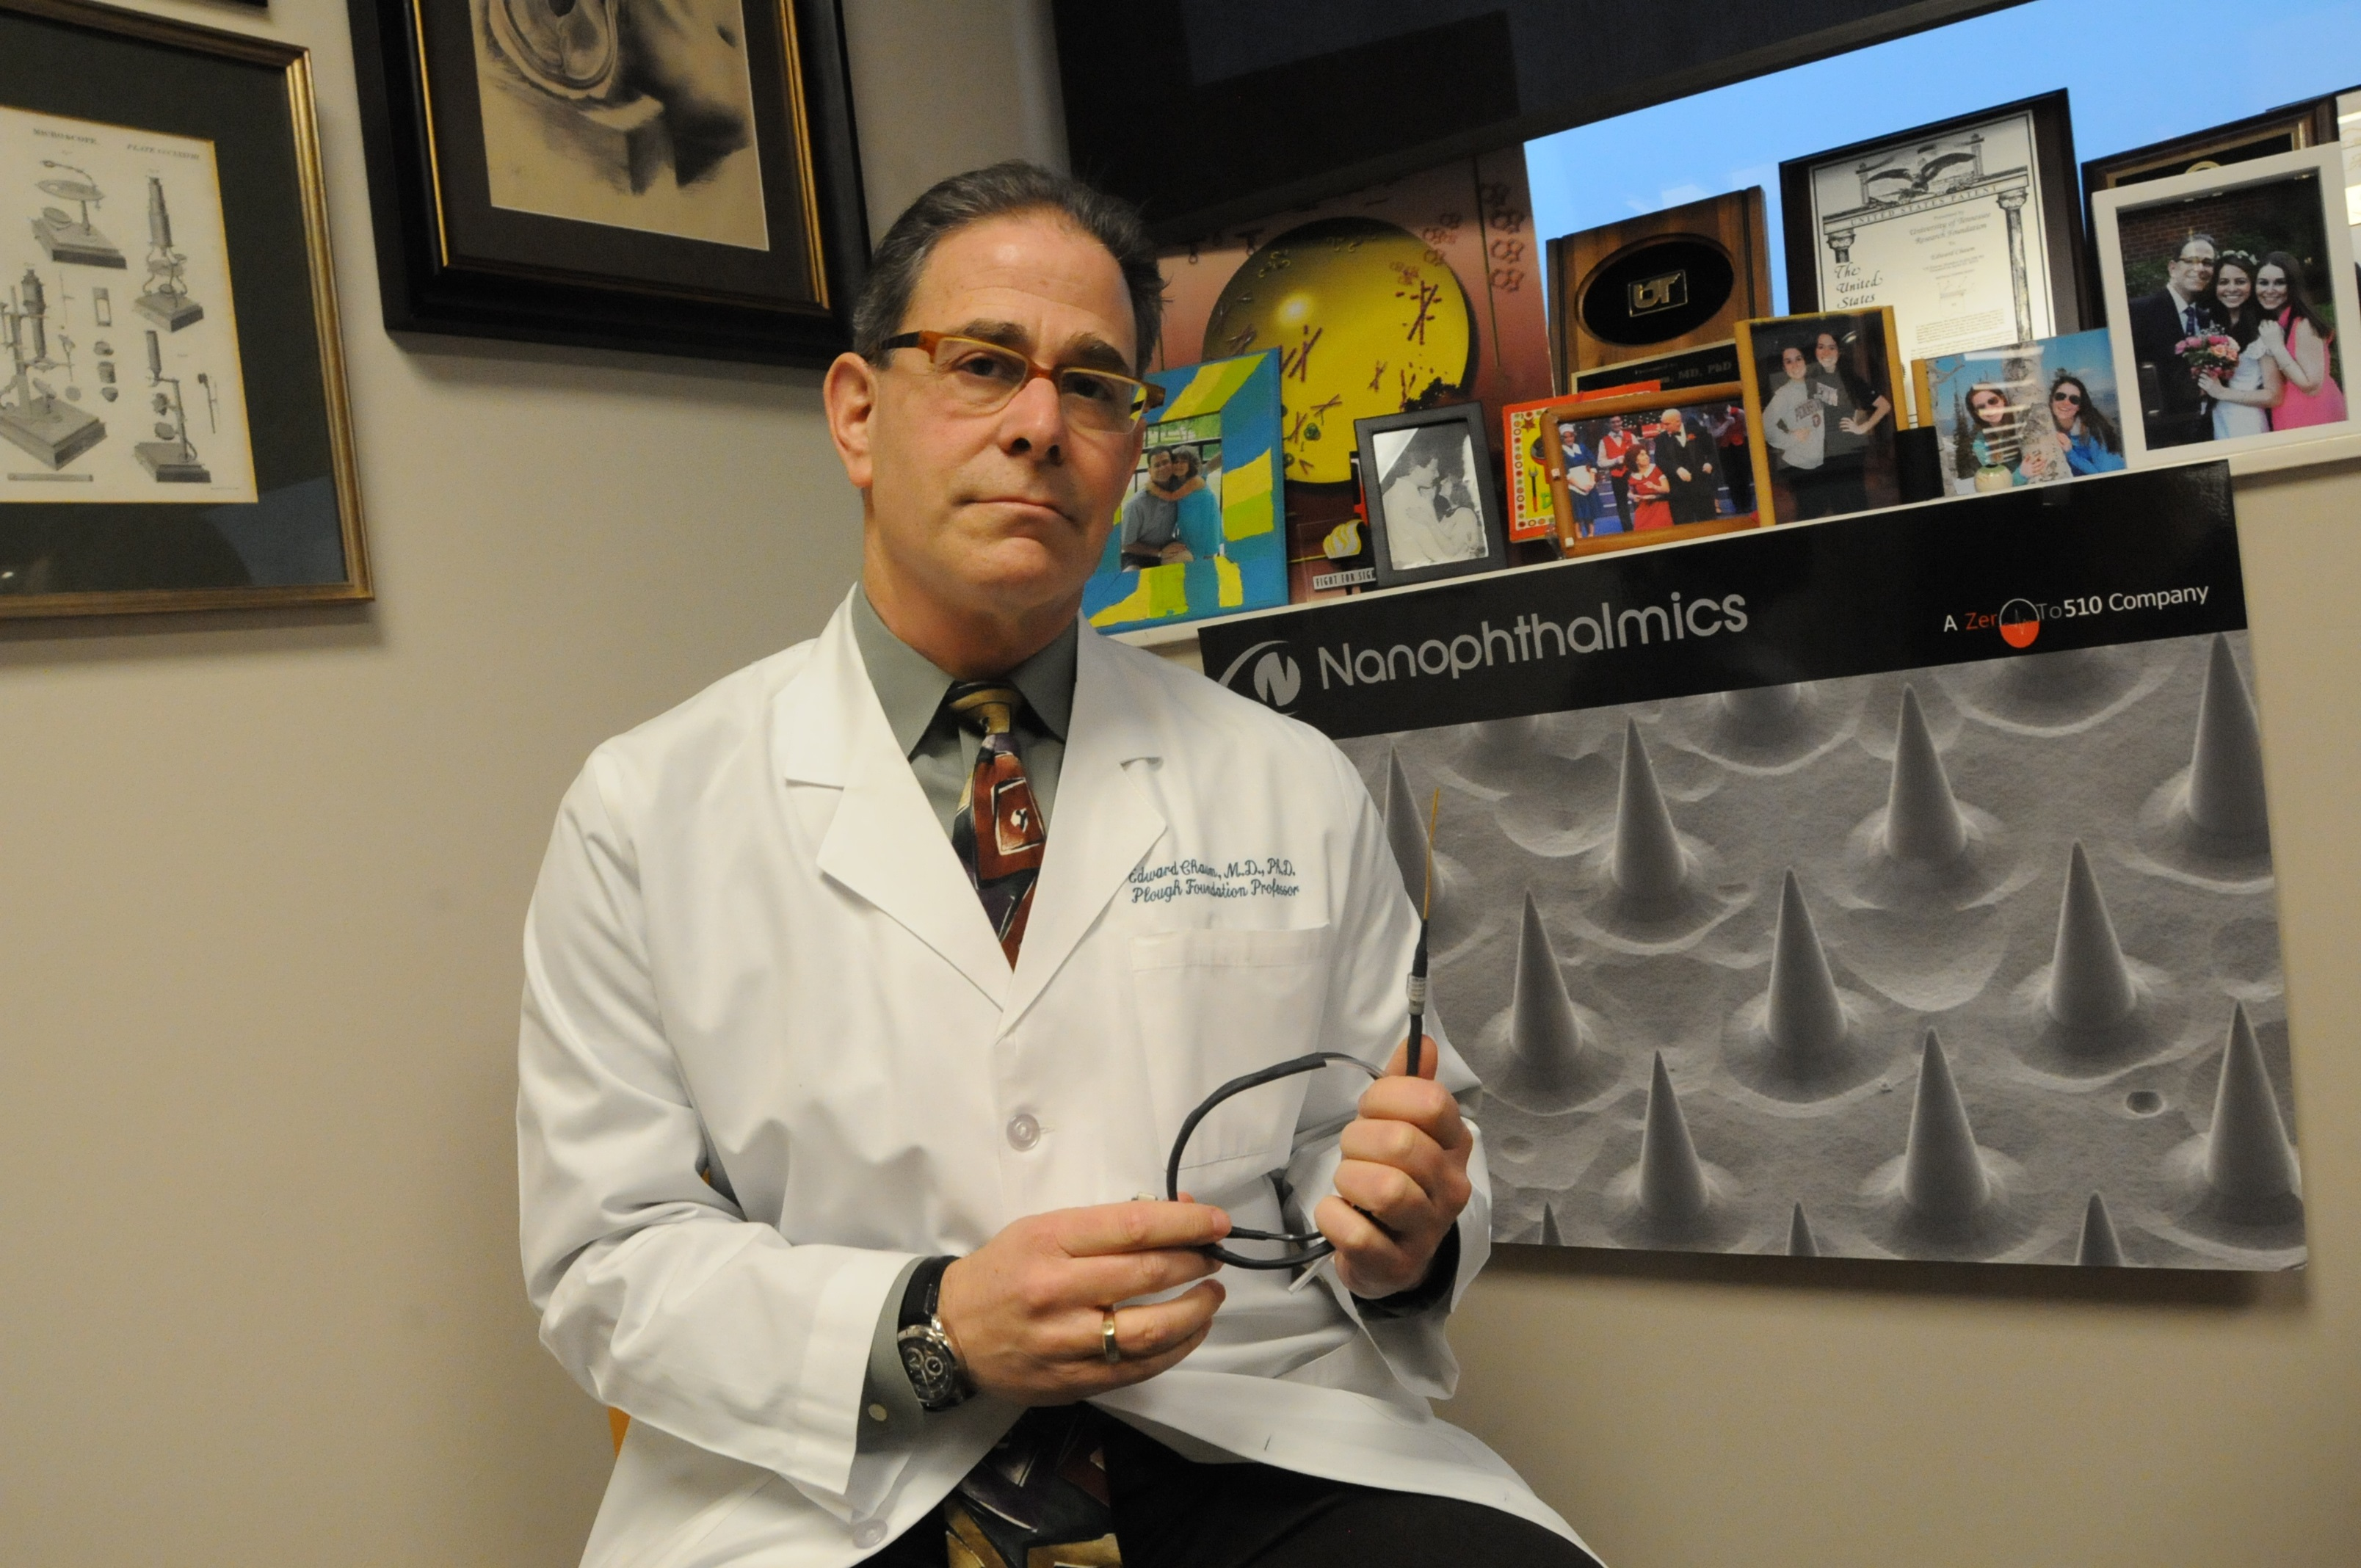 Edward Chaum, MD, PhD, professor of retinal diseases at the University of Tennessee Health Science Center, has been awarded a four-year grant totaling $2.4 million from the National Eye Institute as co-principal investigator on innovative research into age-related macular degeneration.